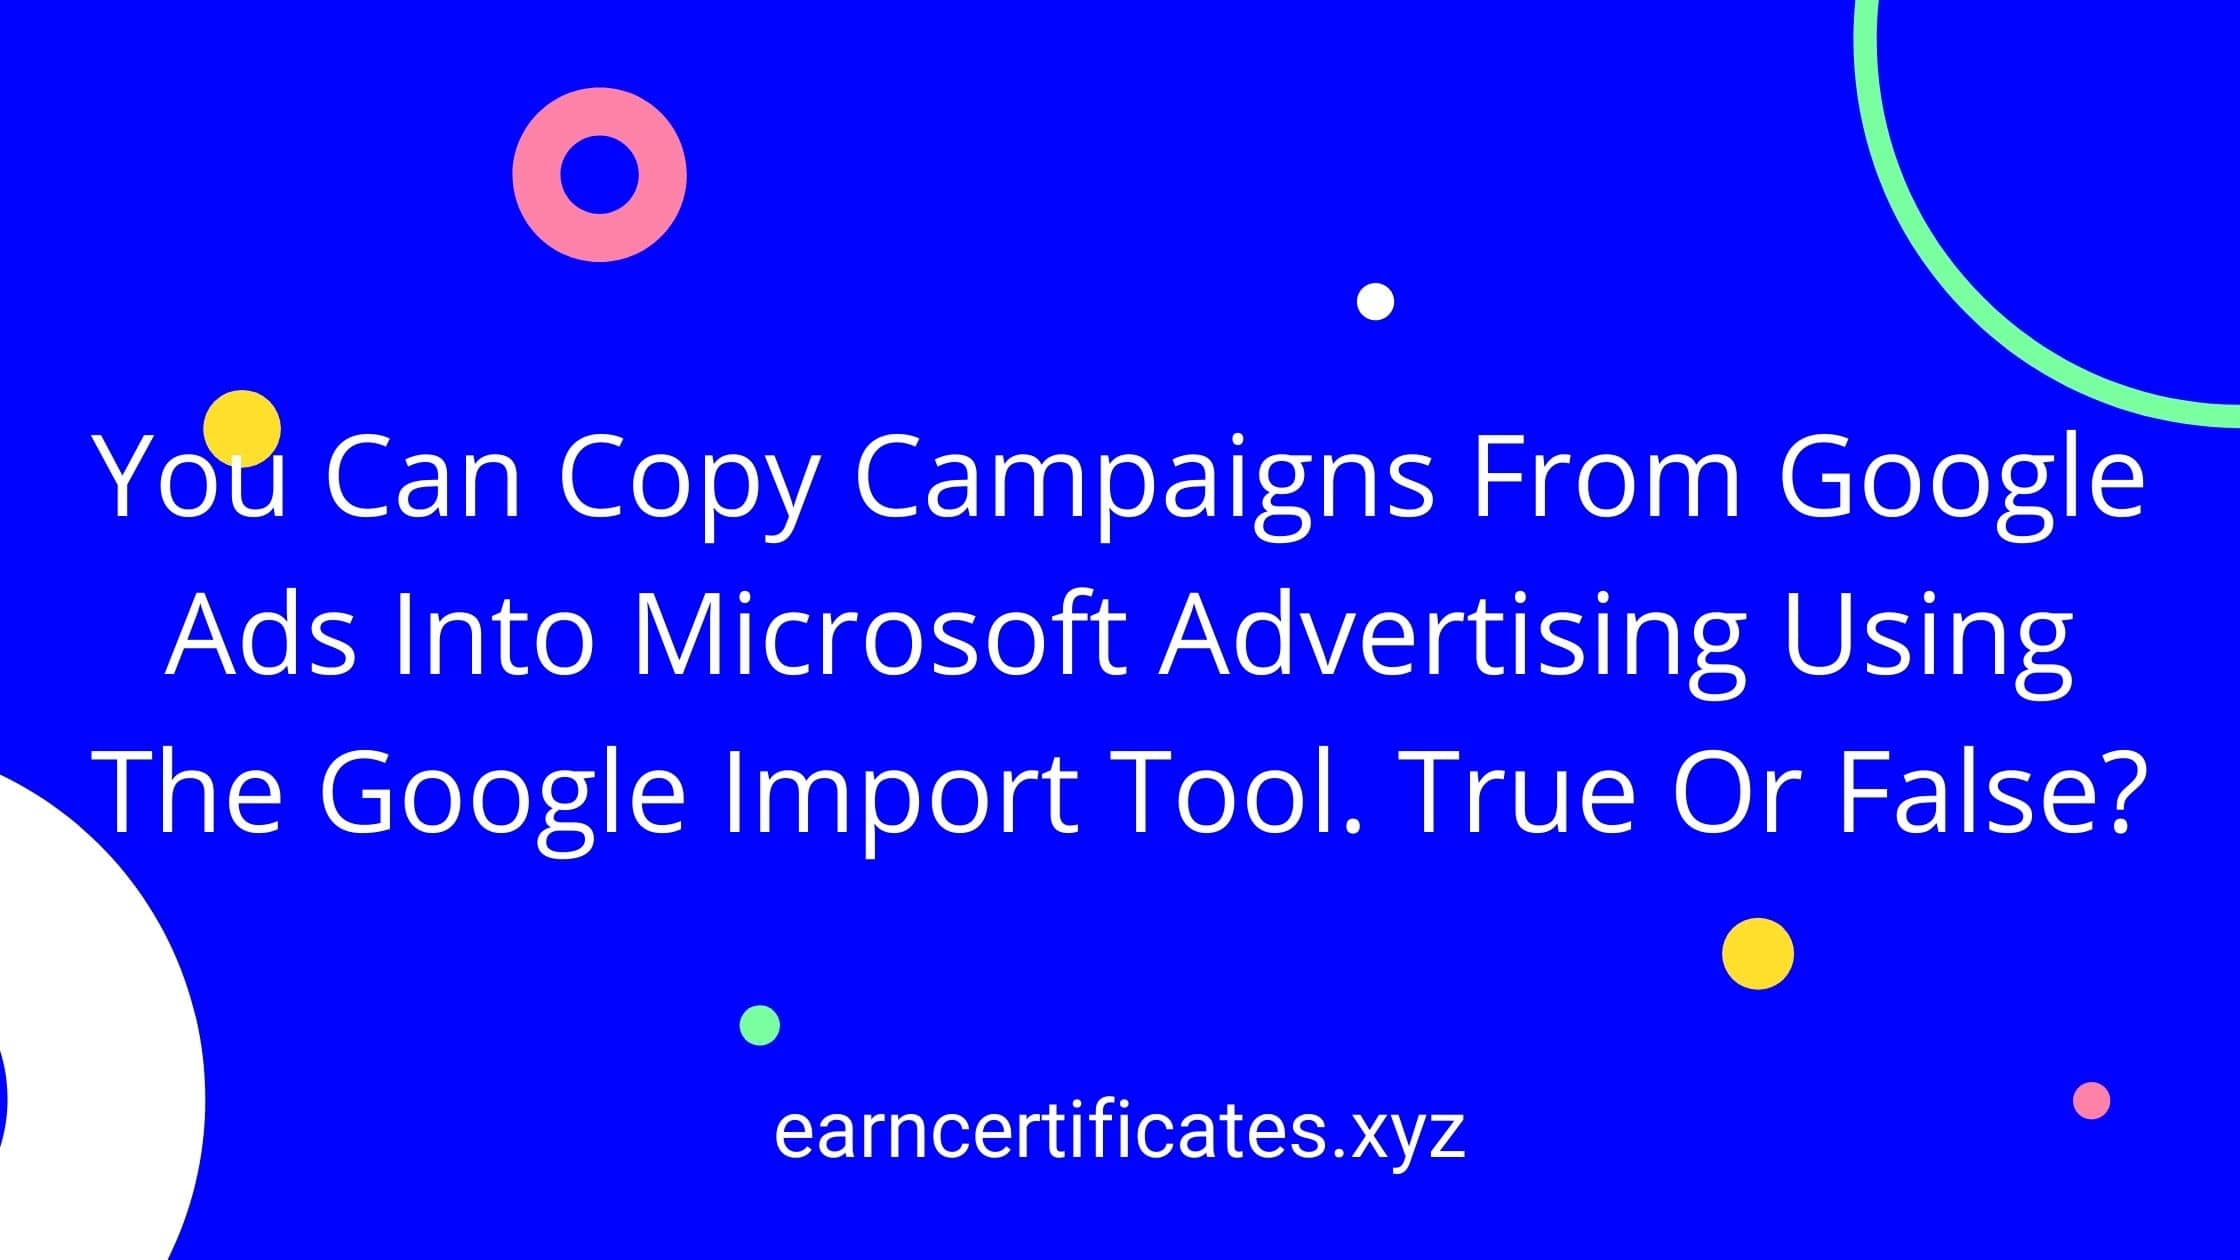 You Can Copy Campaigns From Google Ads Into Microsoft Advertising Using The Google Import Tool. True Or False?